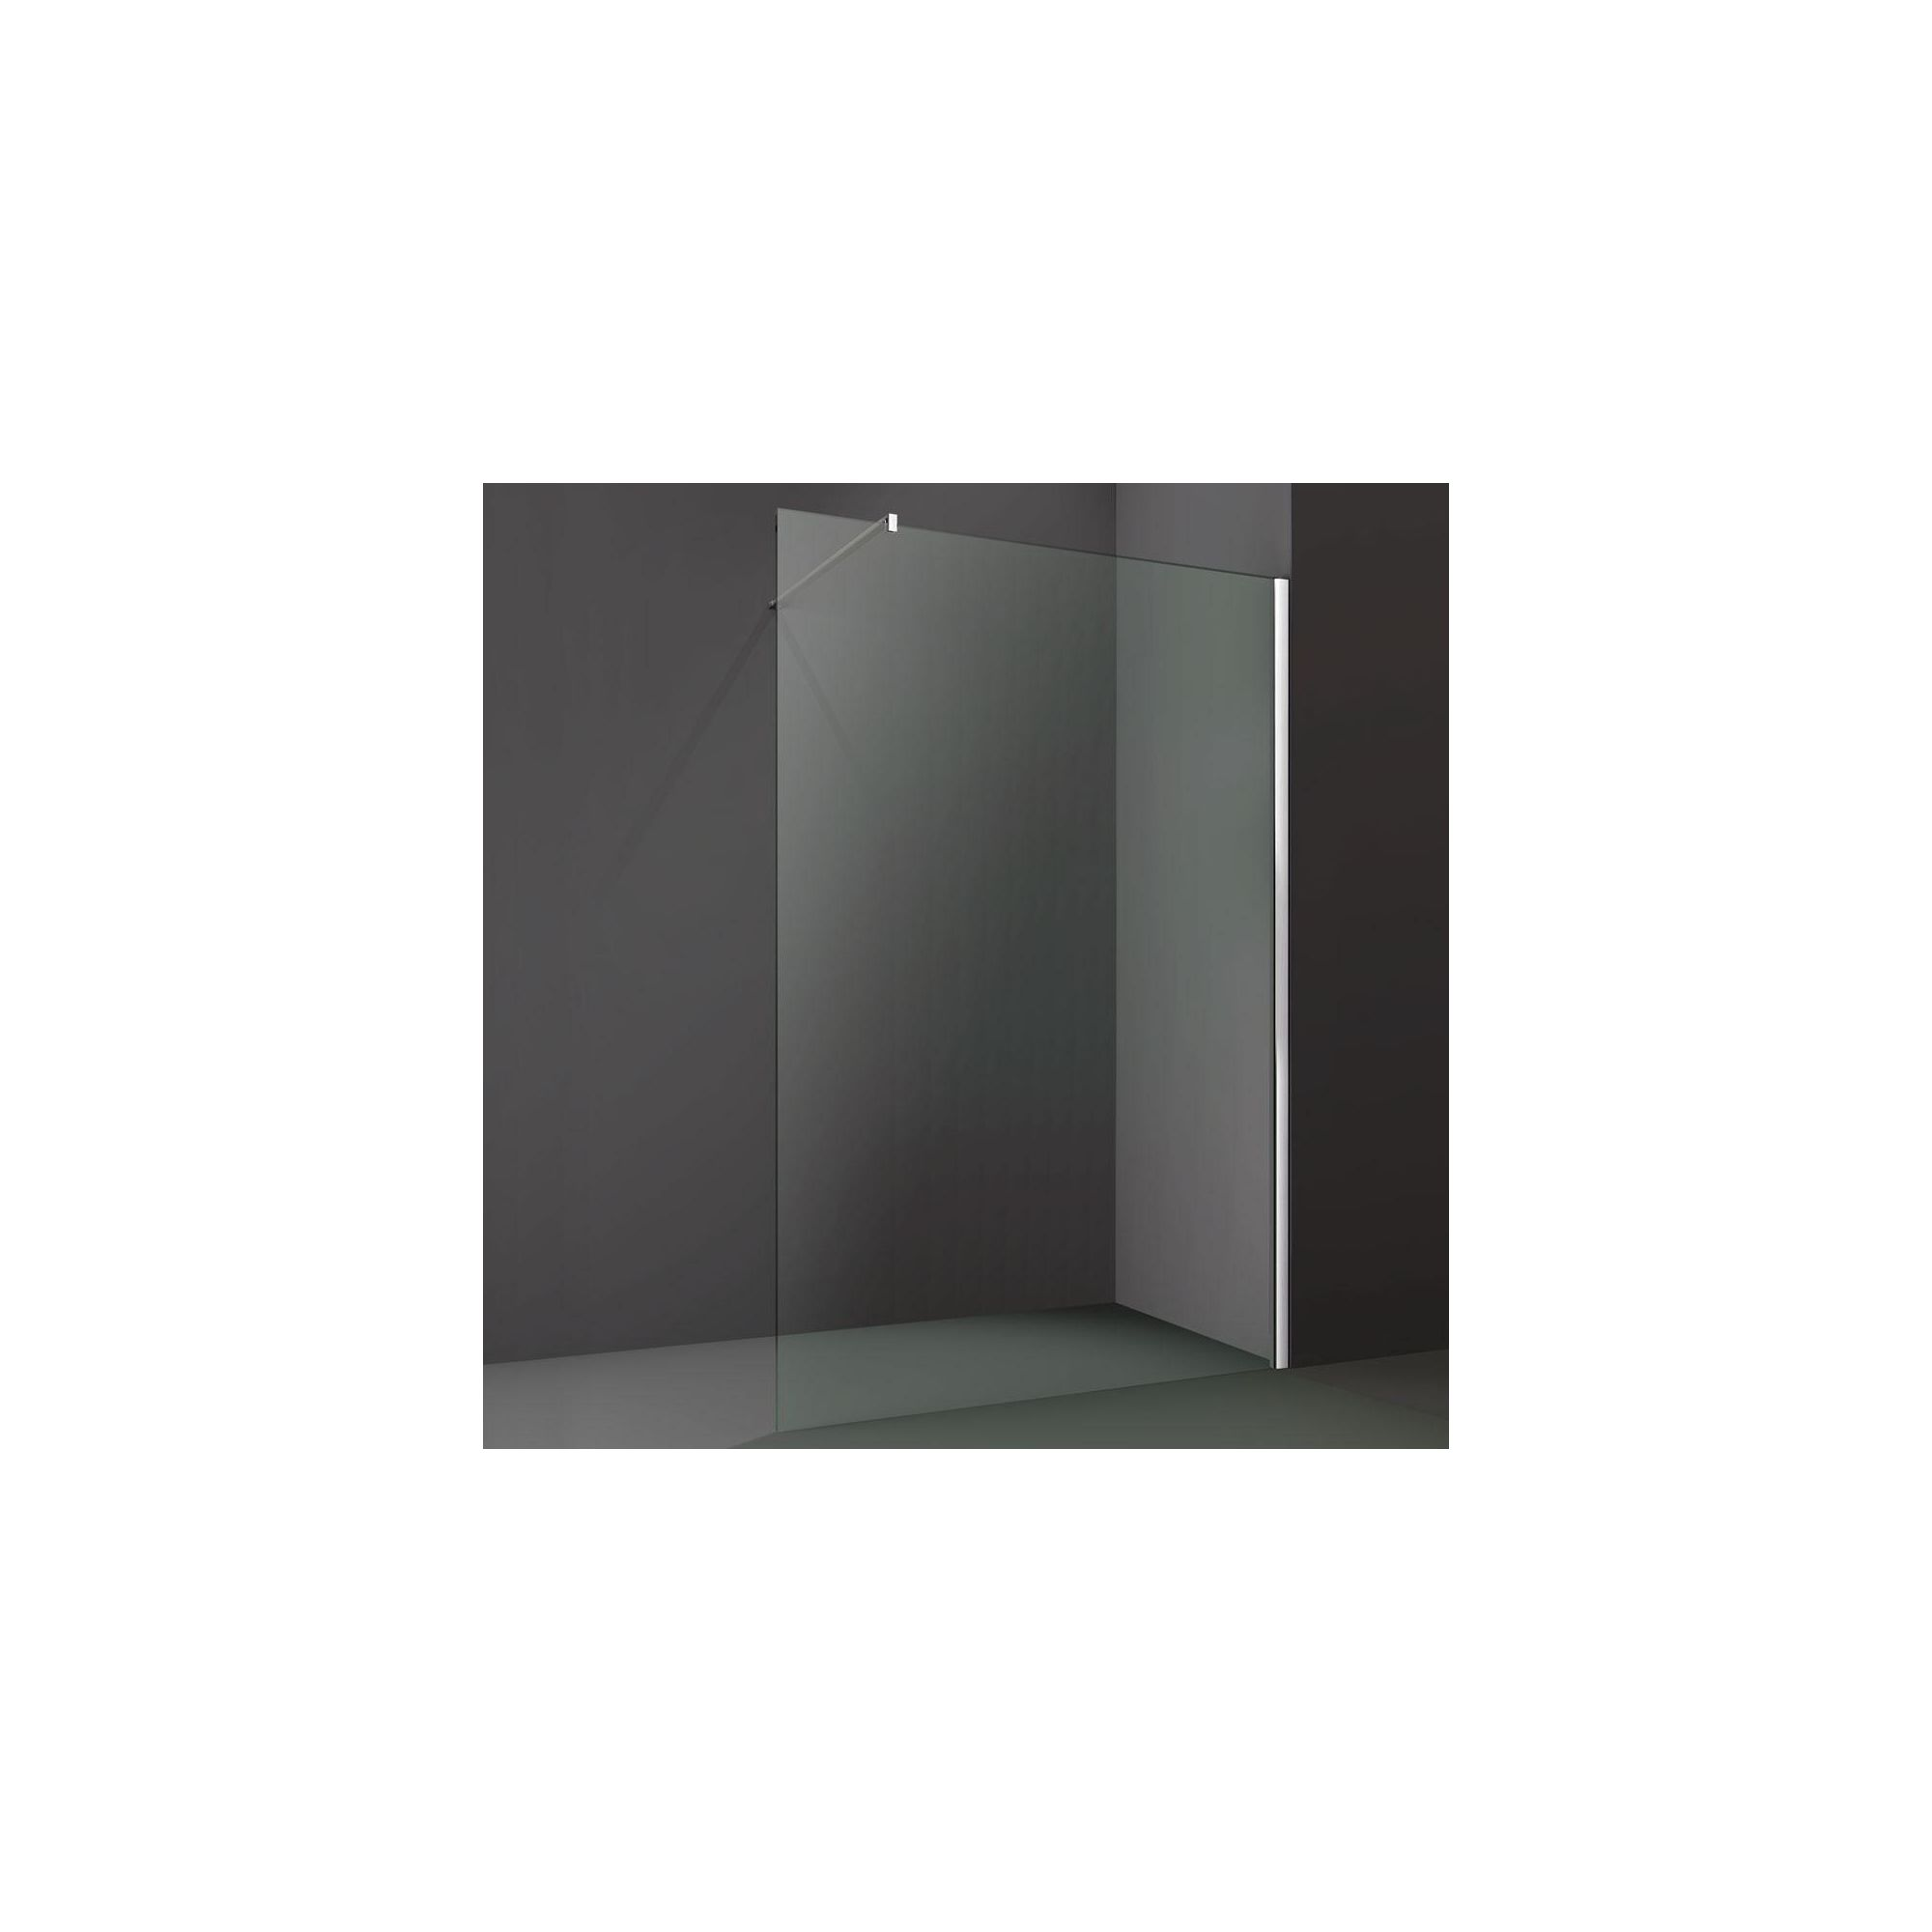 Merlyn Series 8 Wet Room Glass Shower Panel, 900mm Wide, 8mm Glass at Tesco Direct